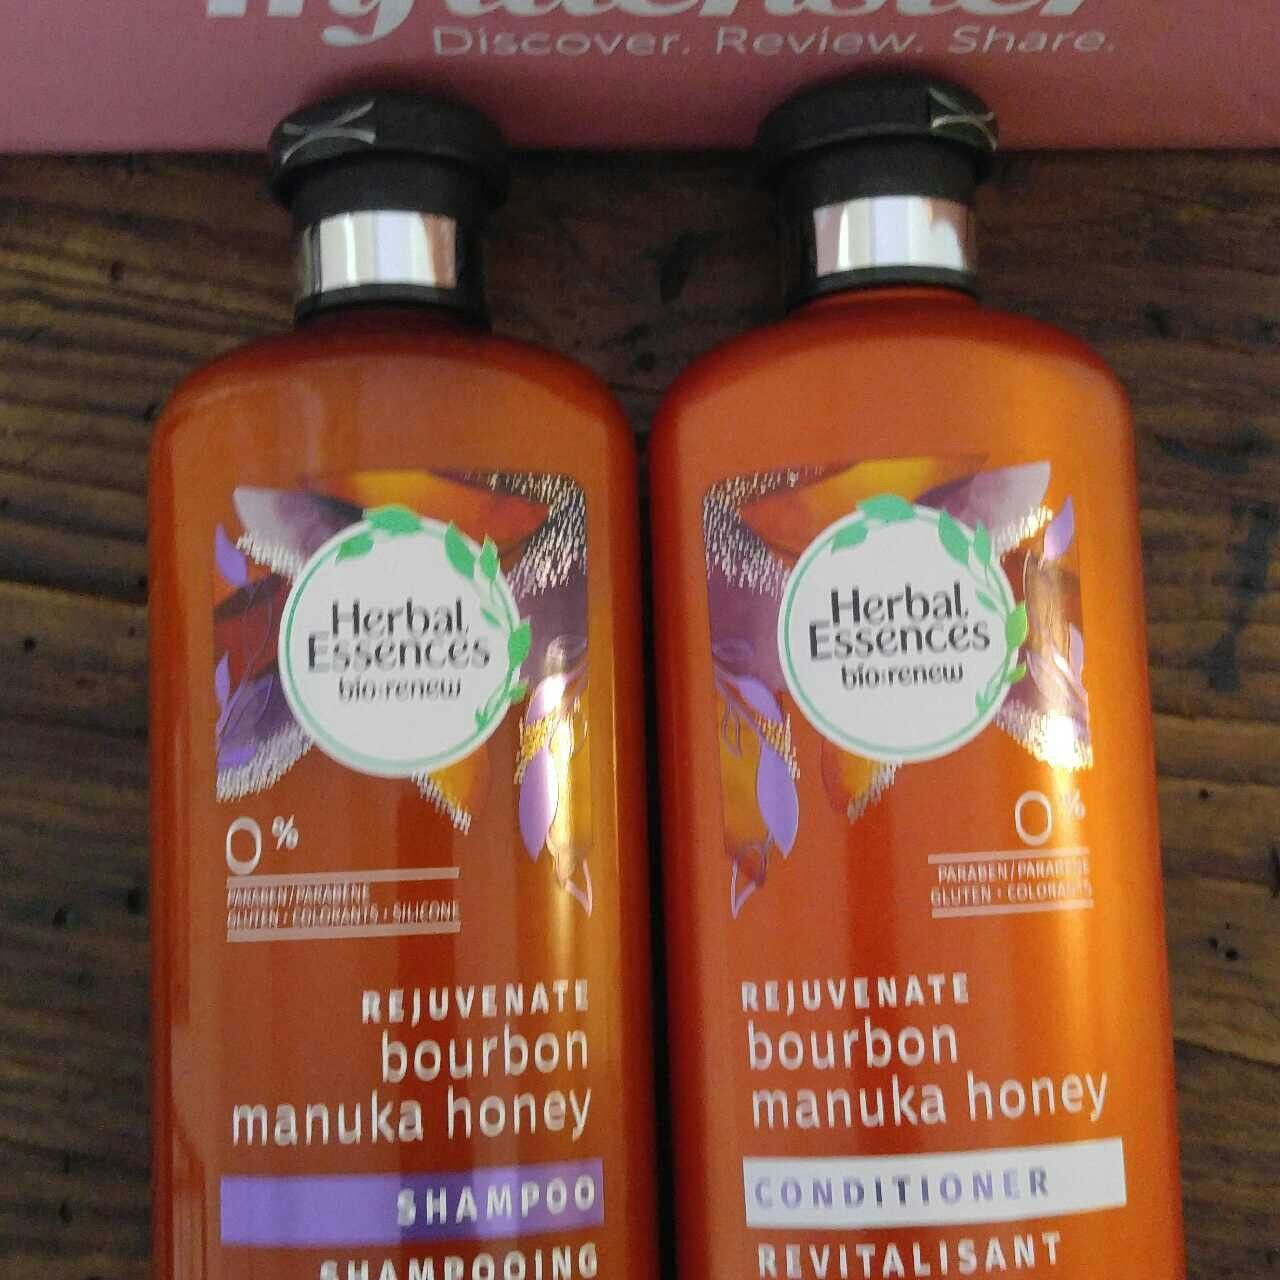 I received the Herbal Essences bíorenew Rejuvenate